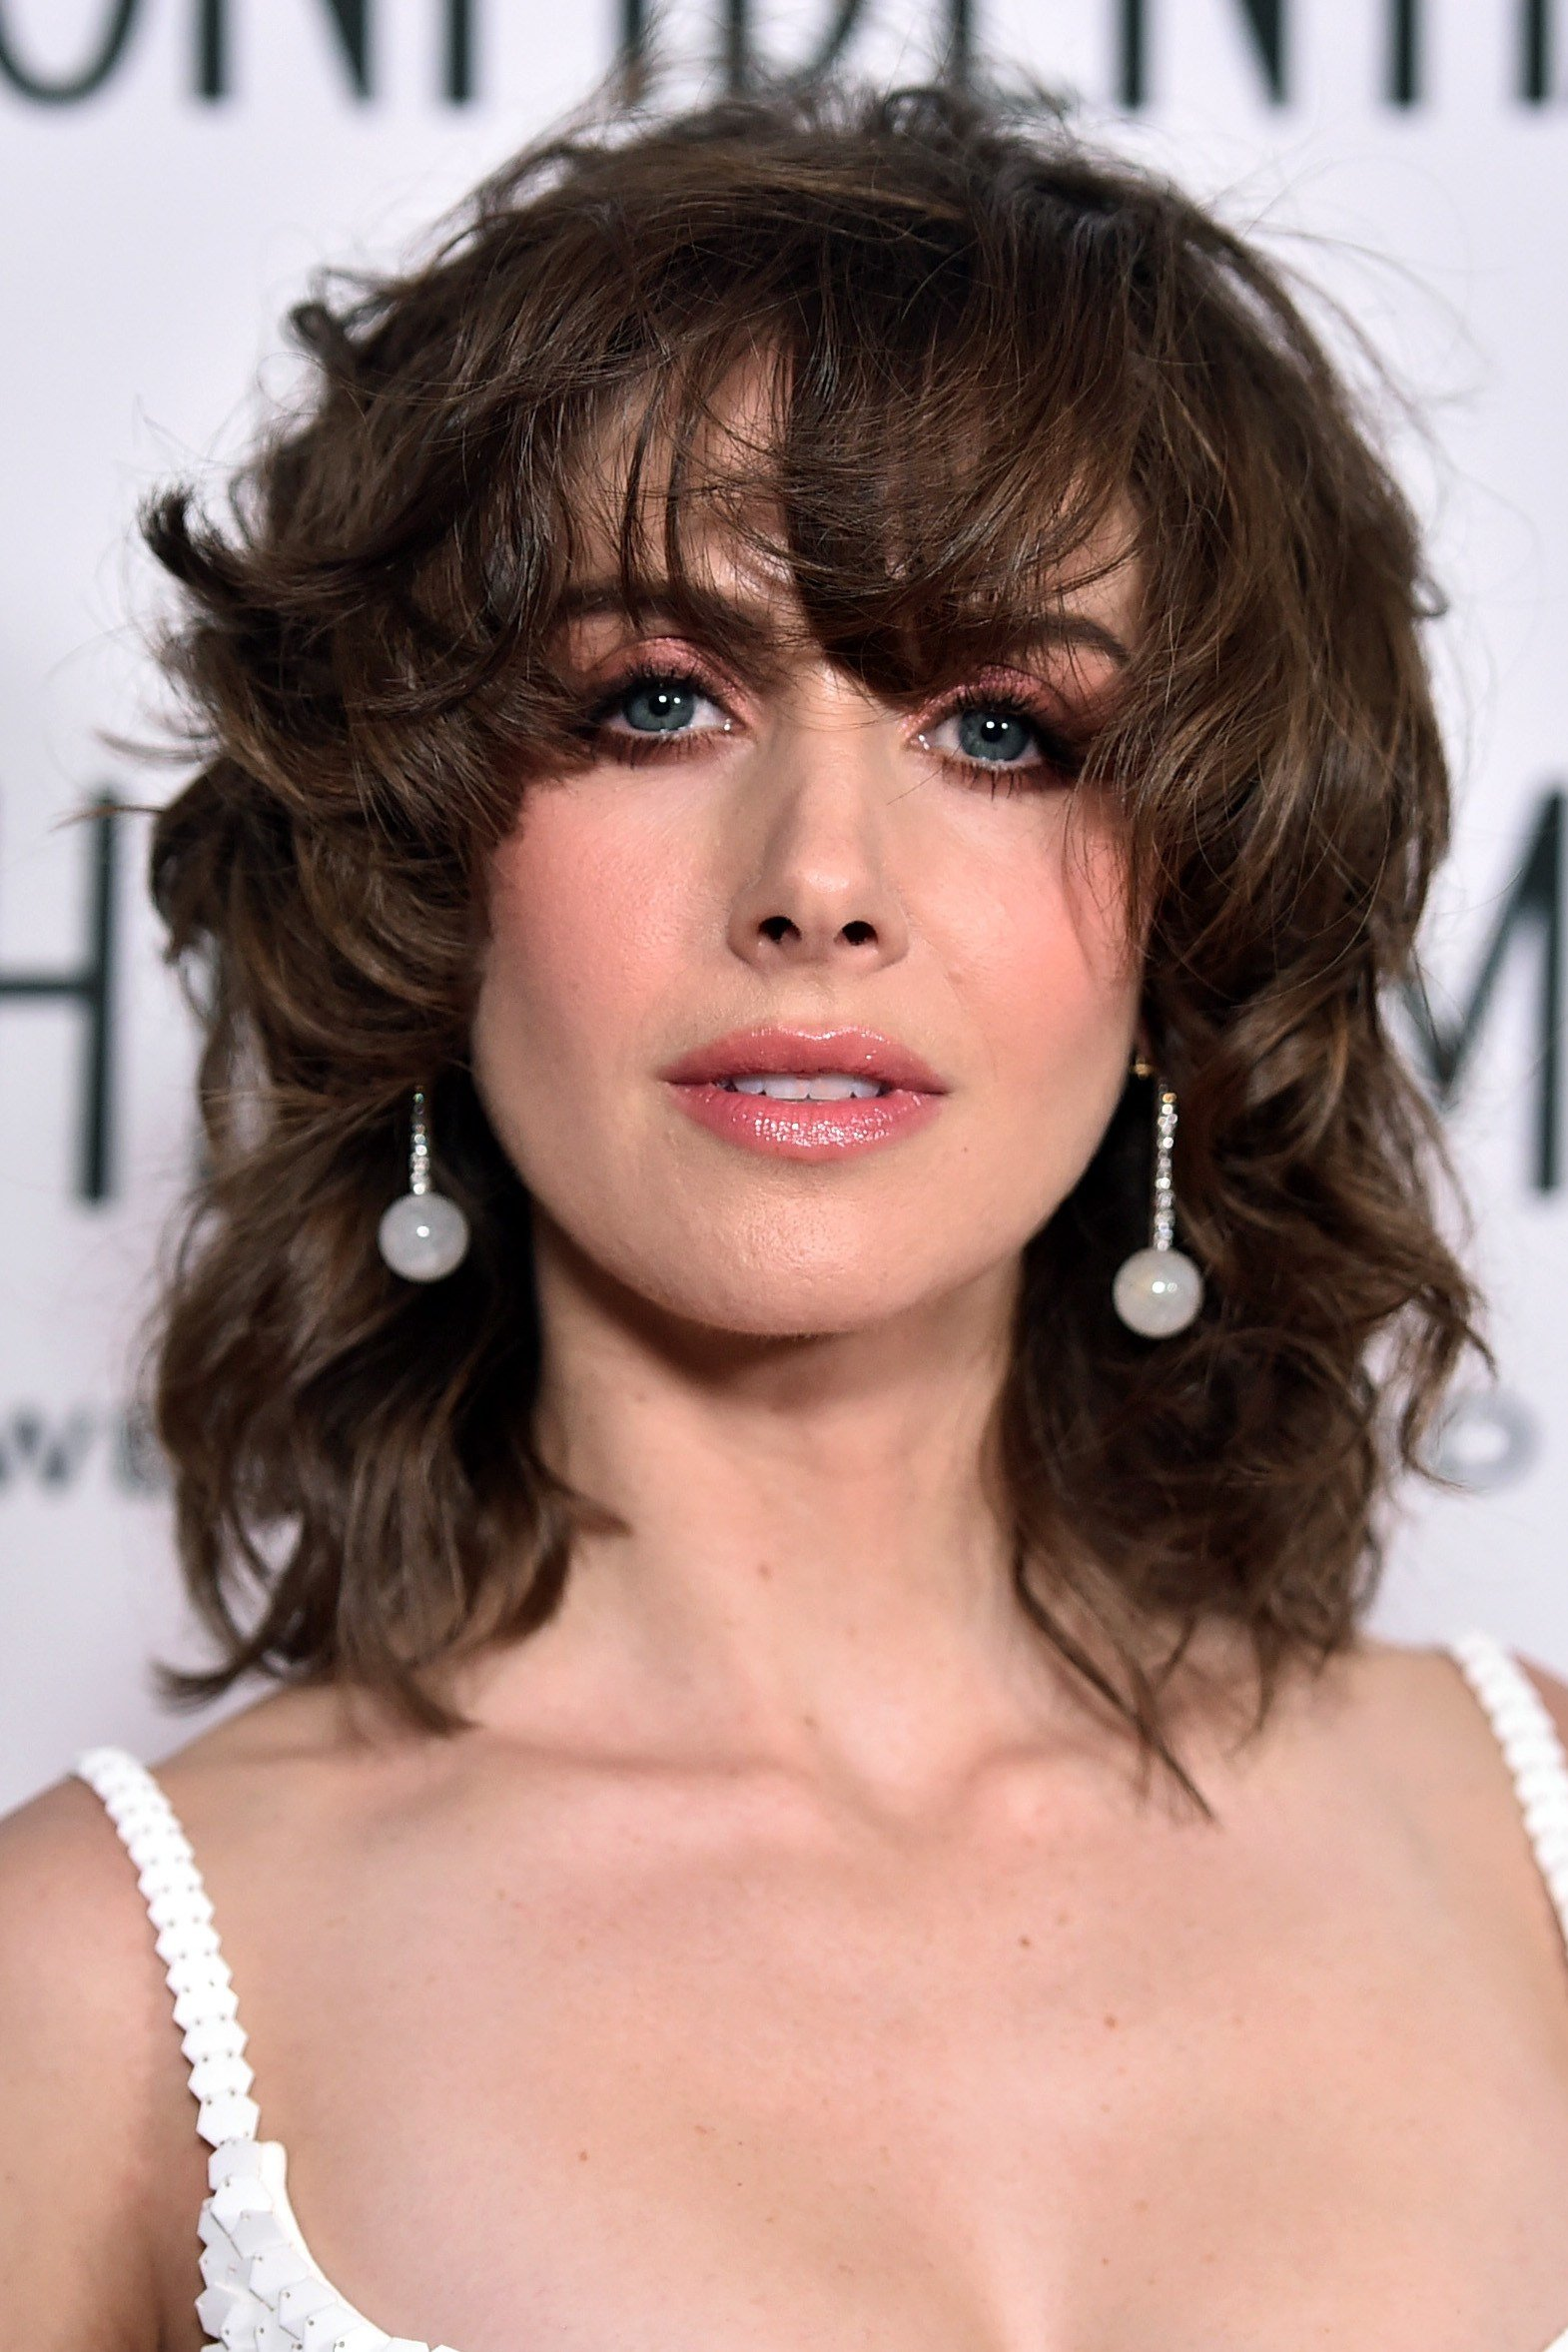 The Best 35 Best Hairstyles With Bangs Photos Of Celebrity Haircuts With Bangs Pictures